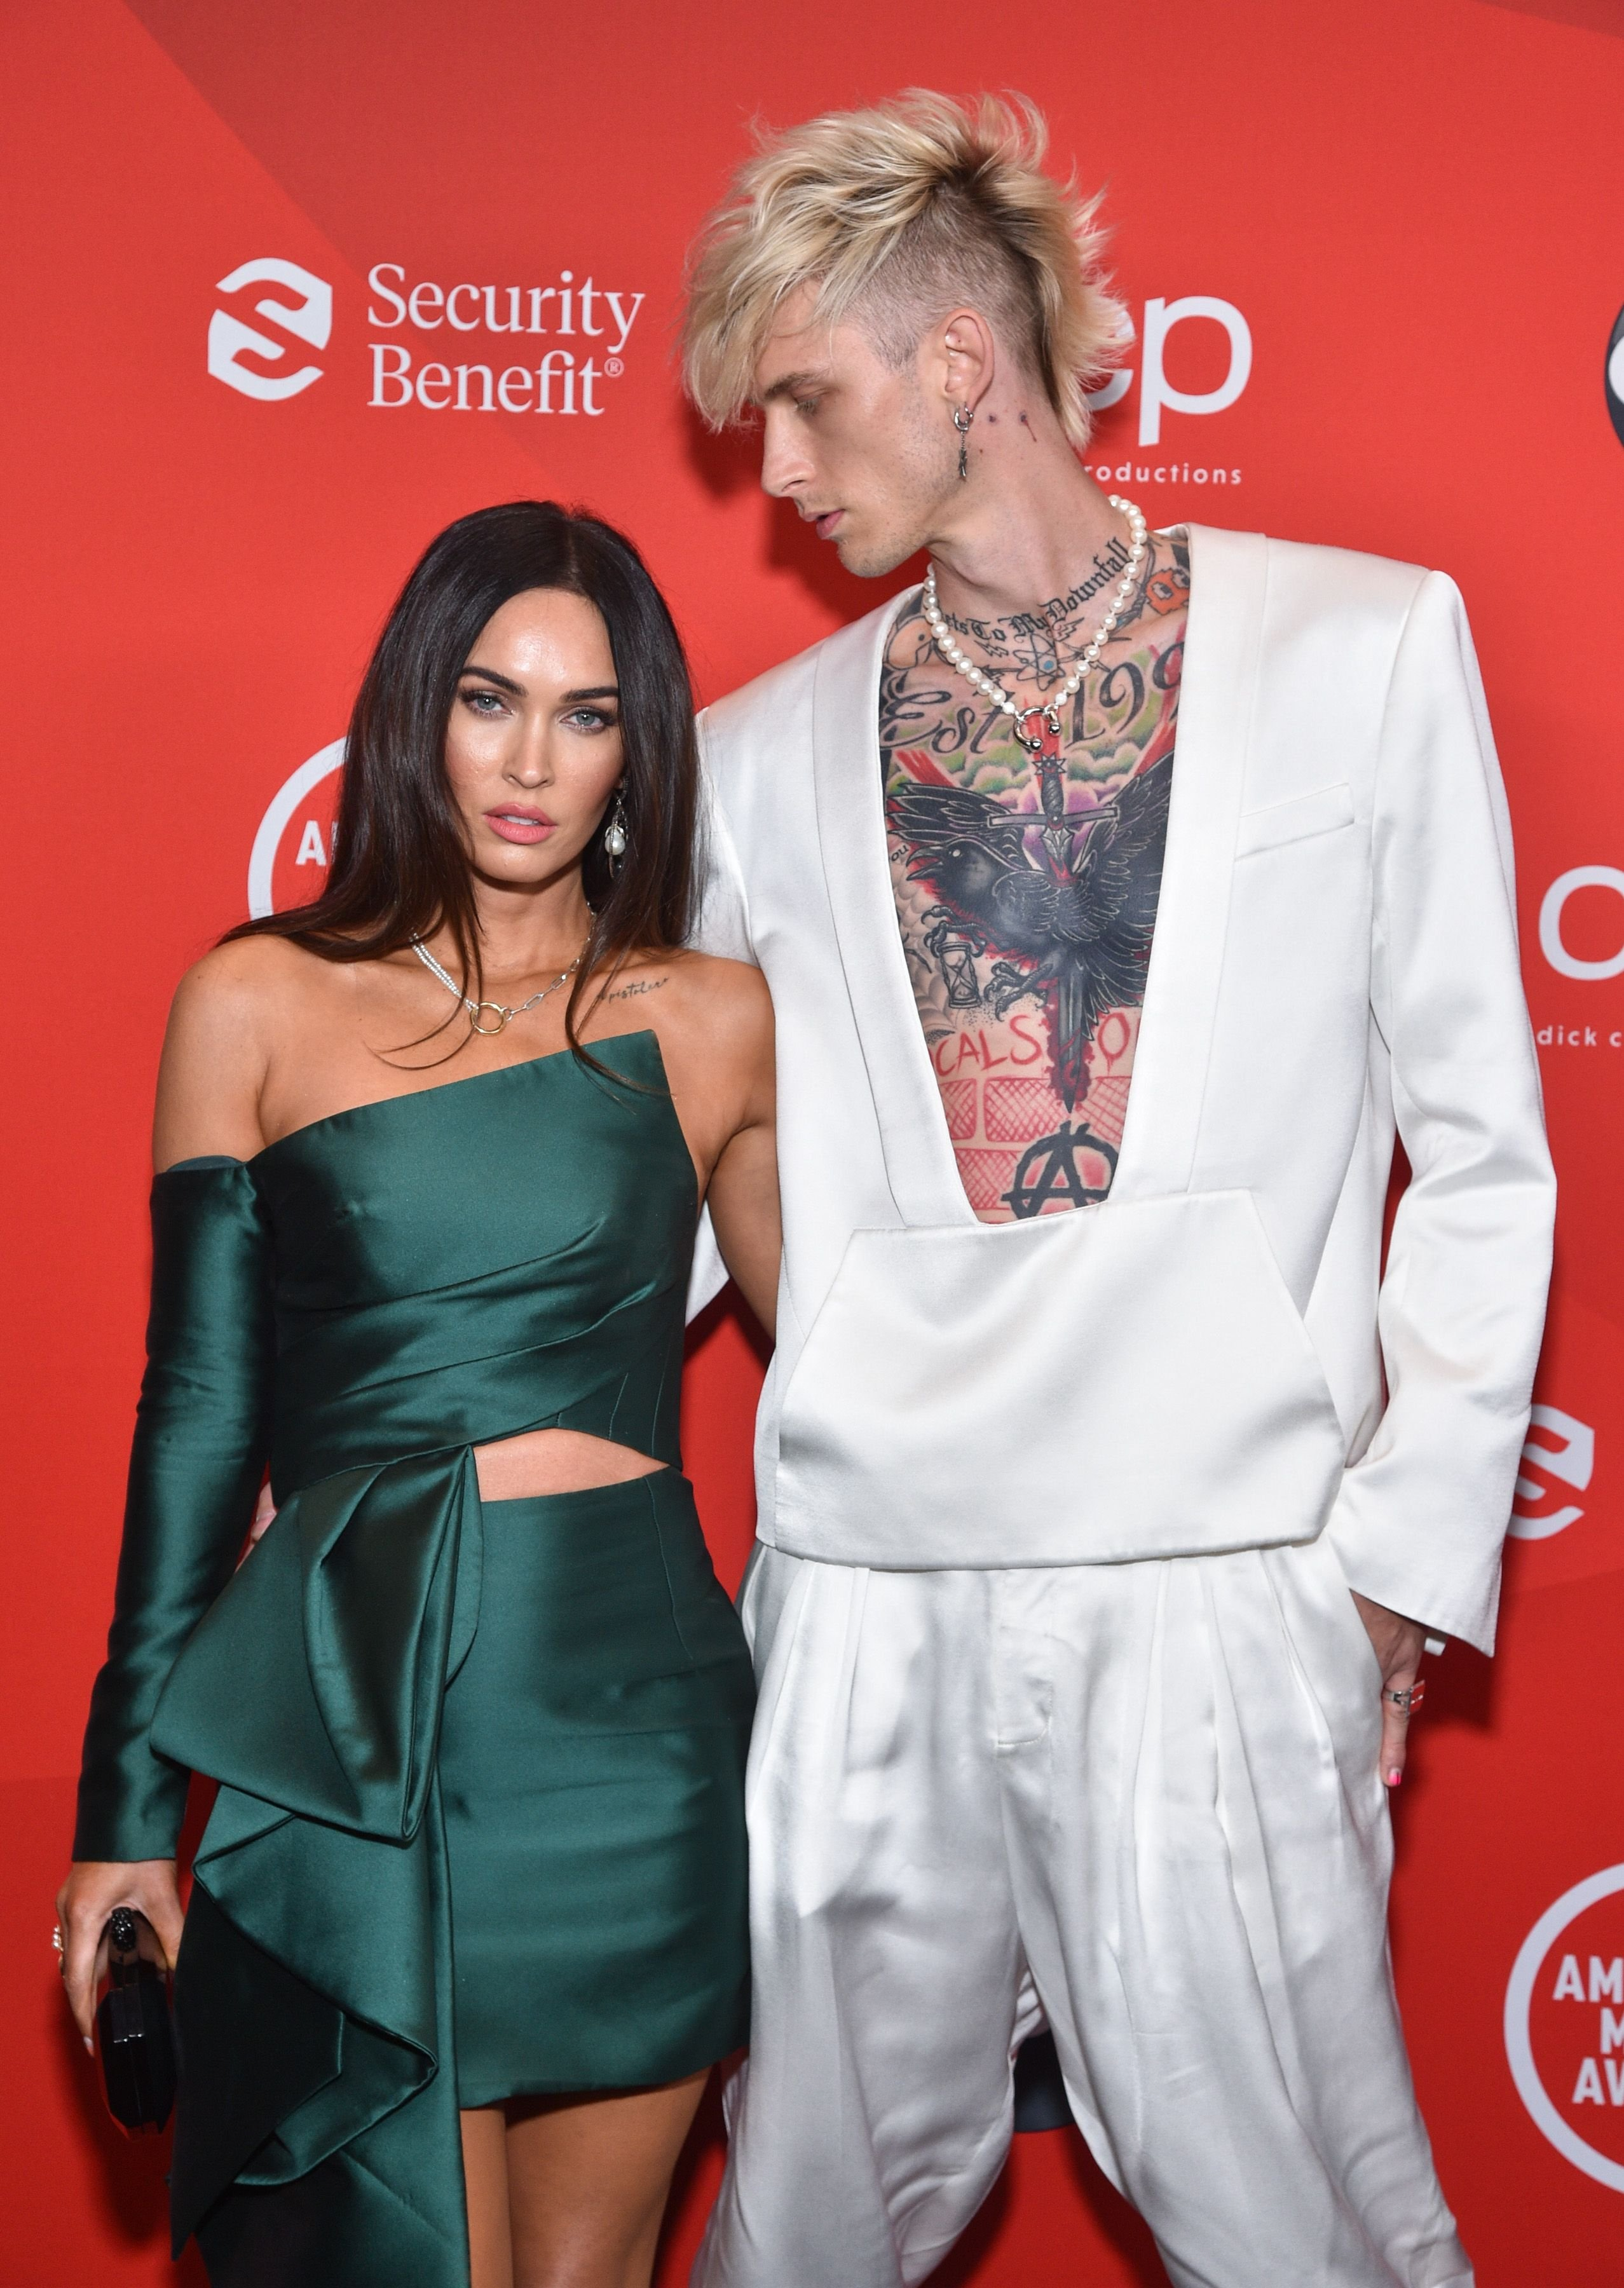 Megan Fox and Machine Gun Kelly at the 2020 American Music Awards in Los Angeles   Source: Getty Images